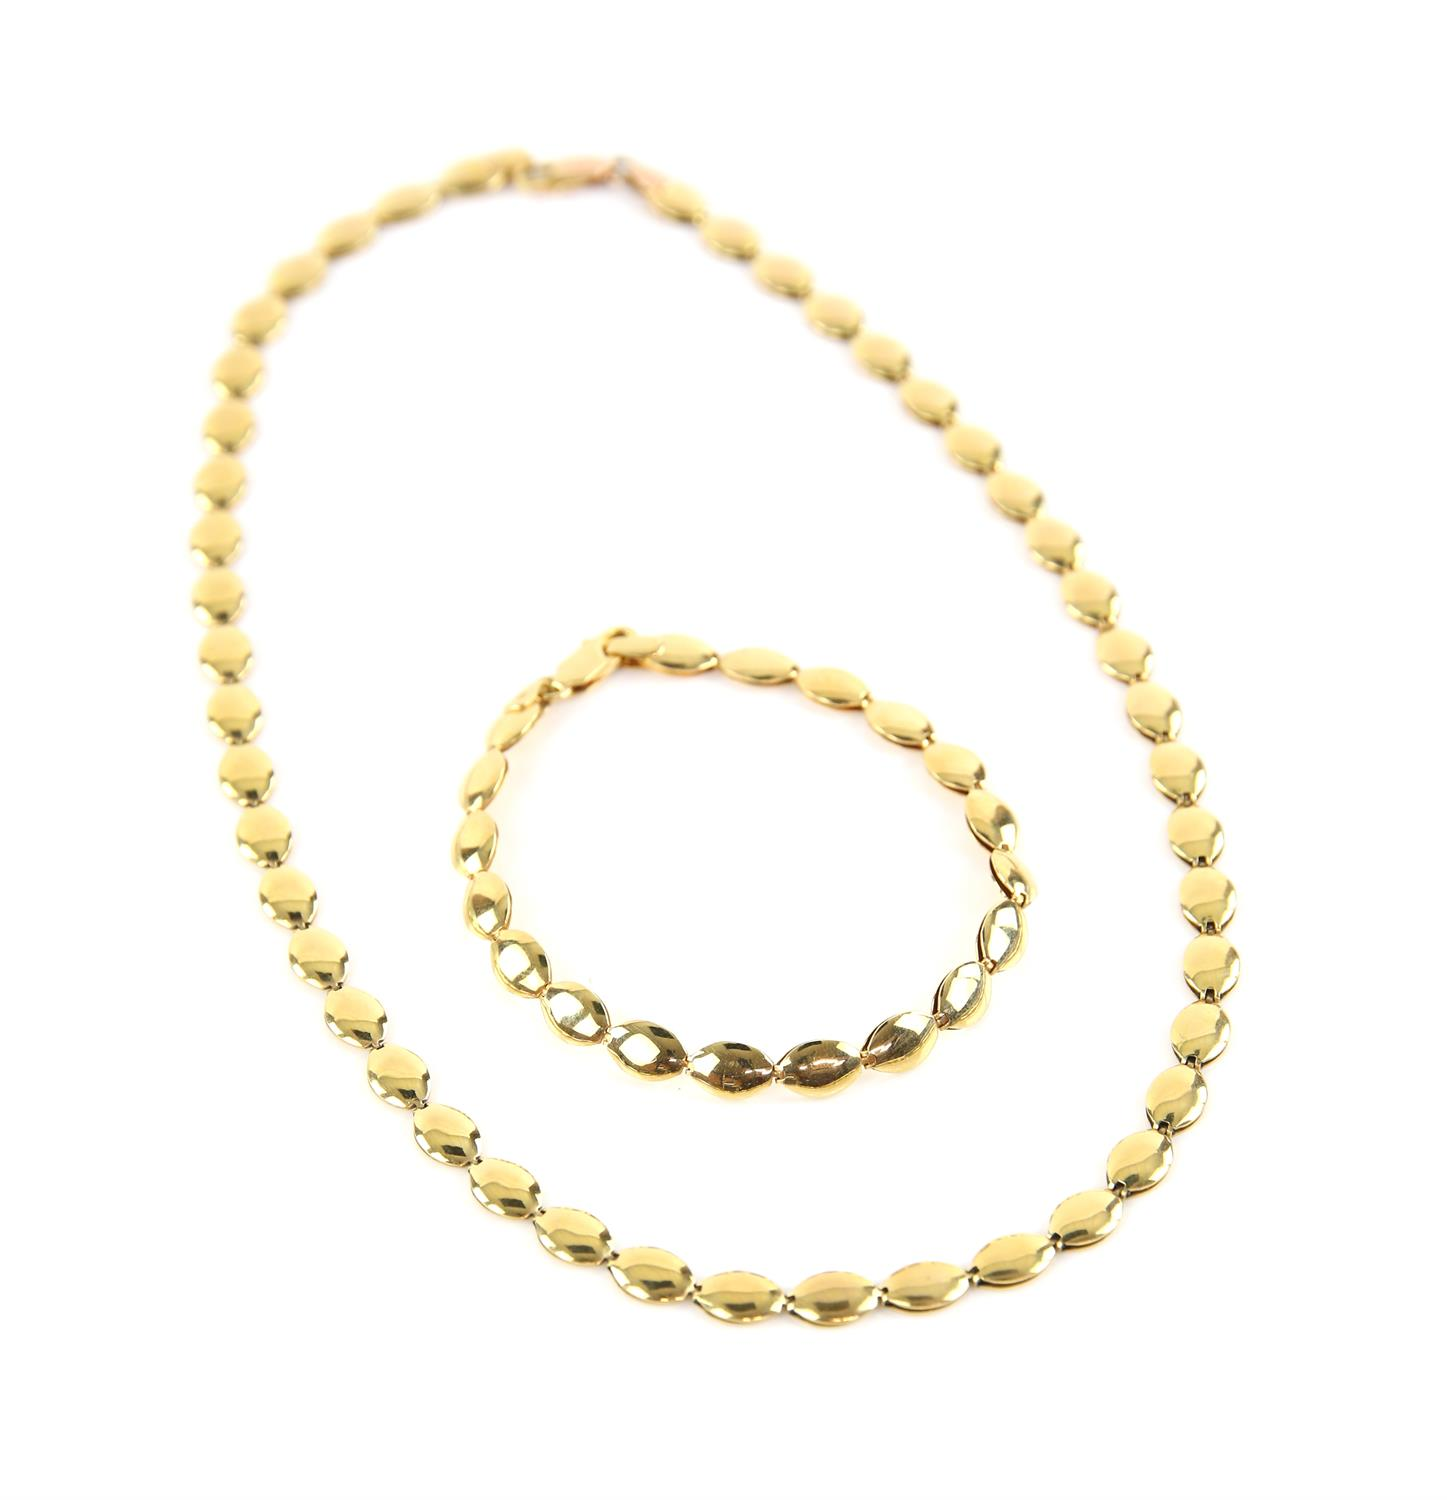 Necklace and bracelet set, designed as oval gold articulated links, on a lobster clasp,